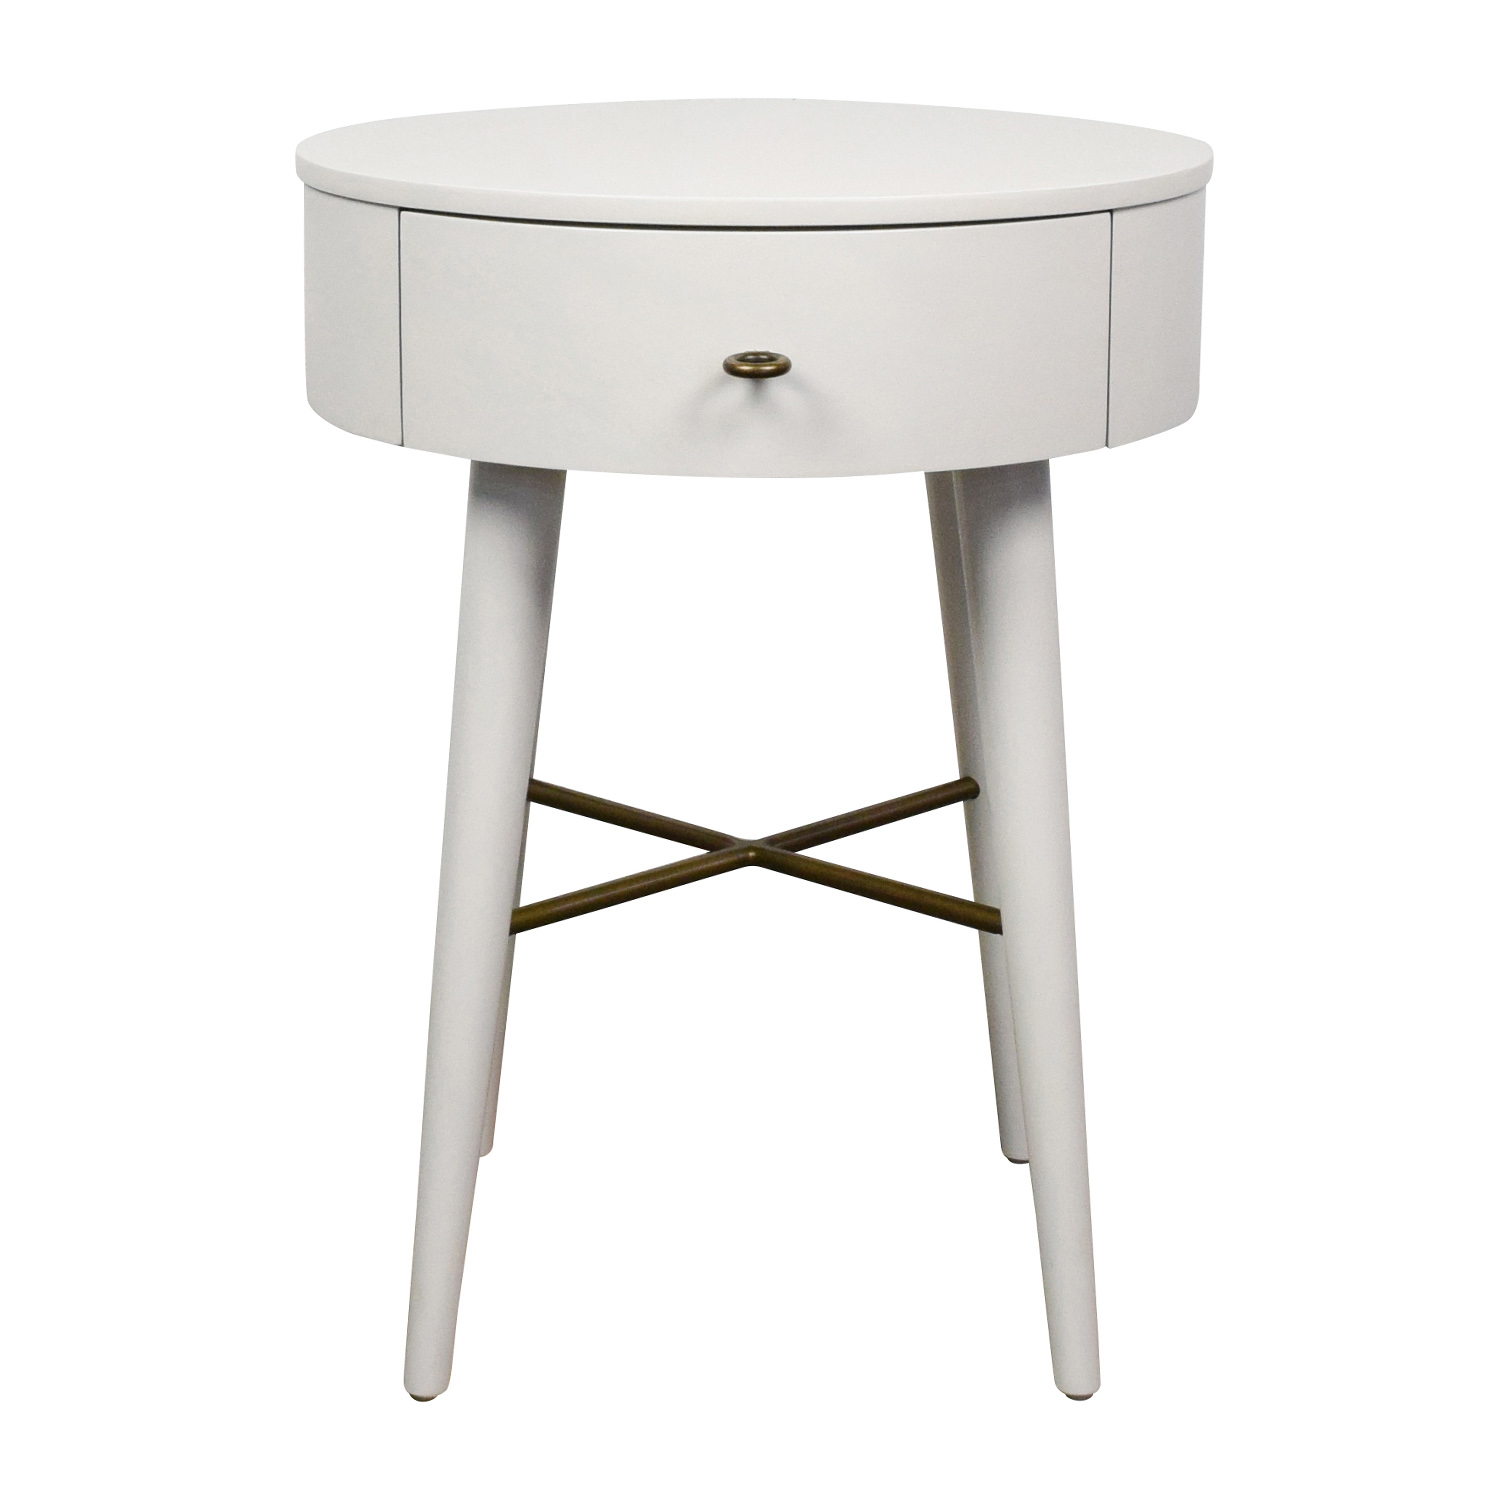 plush home marlborough round bedside table intended for night plan off west elm penelope white nightstand tables regarding prepare alton accent architecture hampton bay lounge